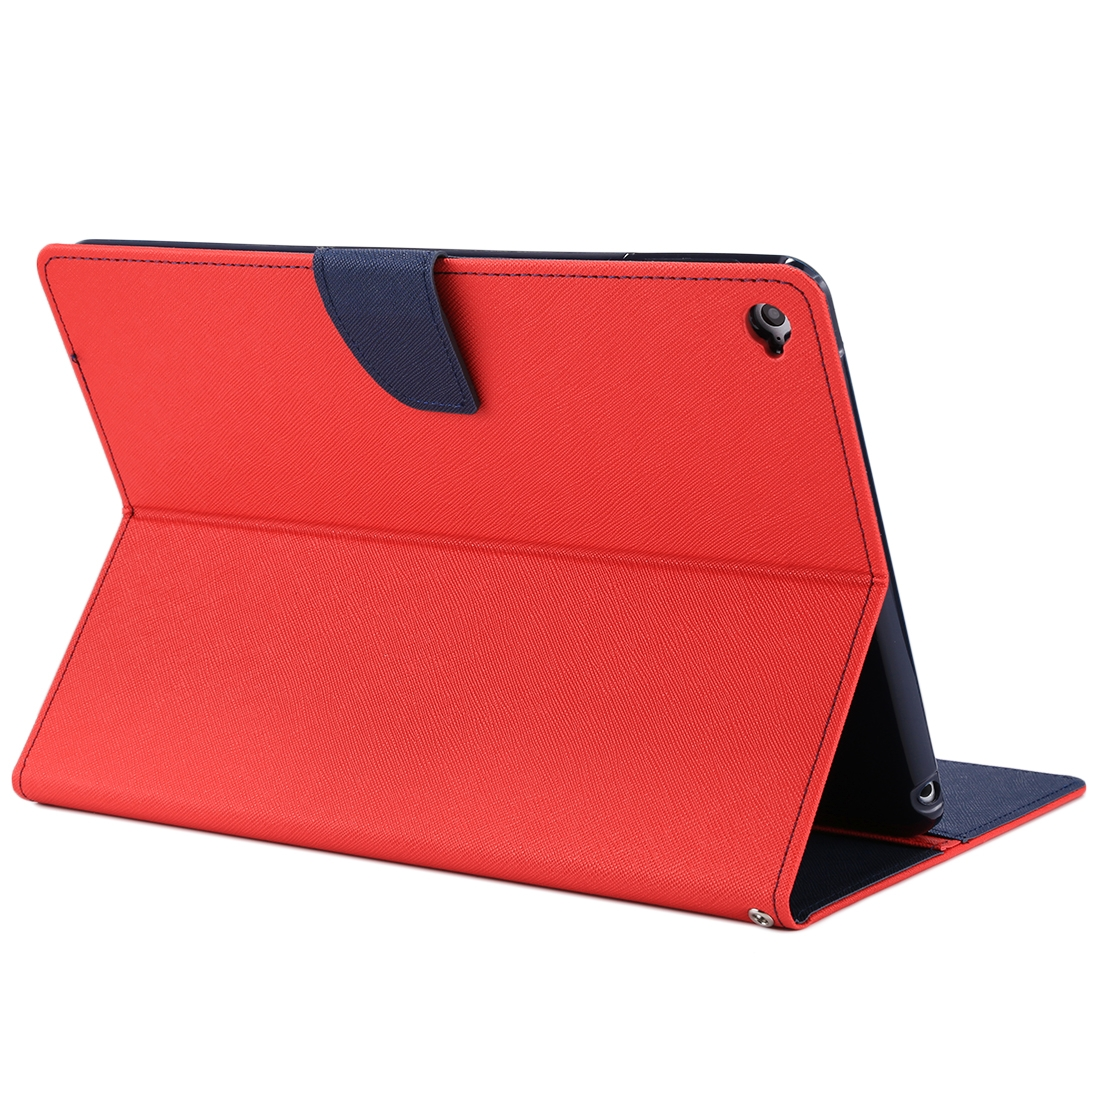 iPad Air 2 Case Cross Texture Leather Case with Sleeve, Holder  (Red)